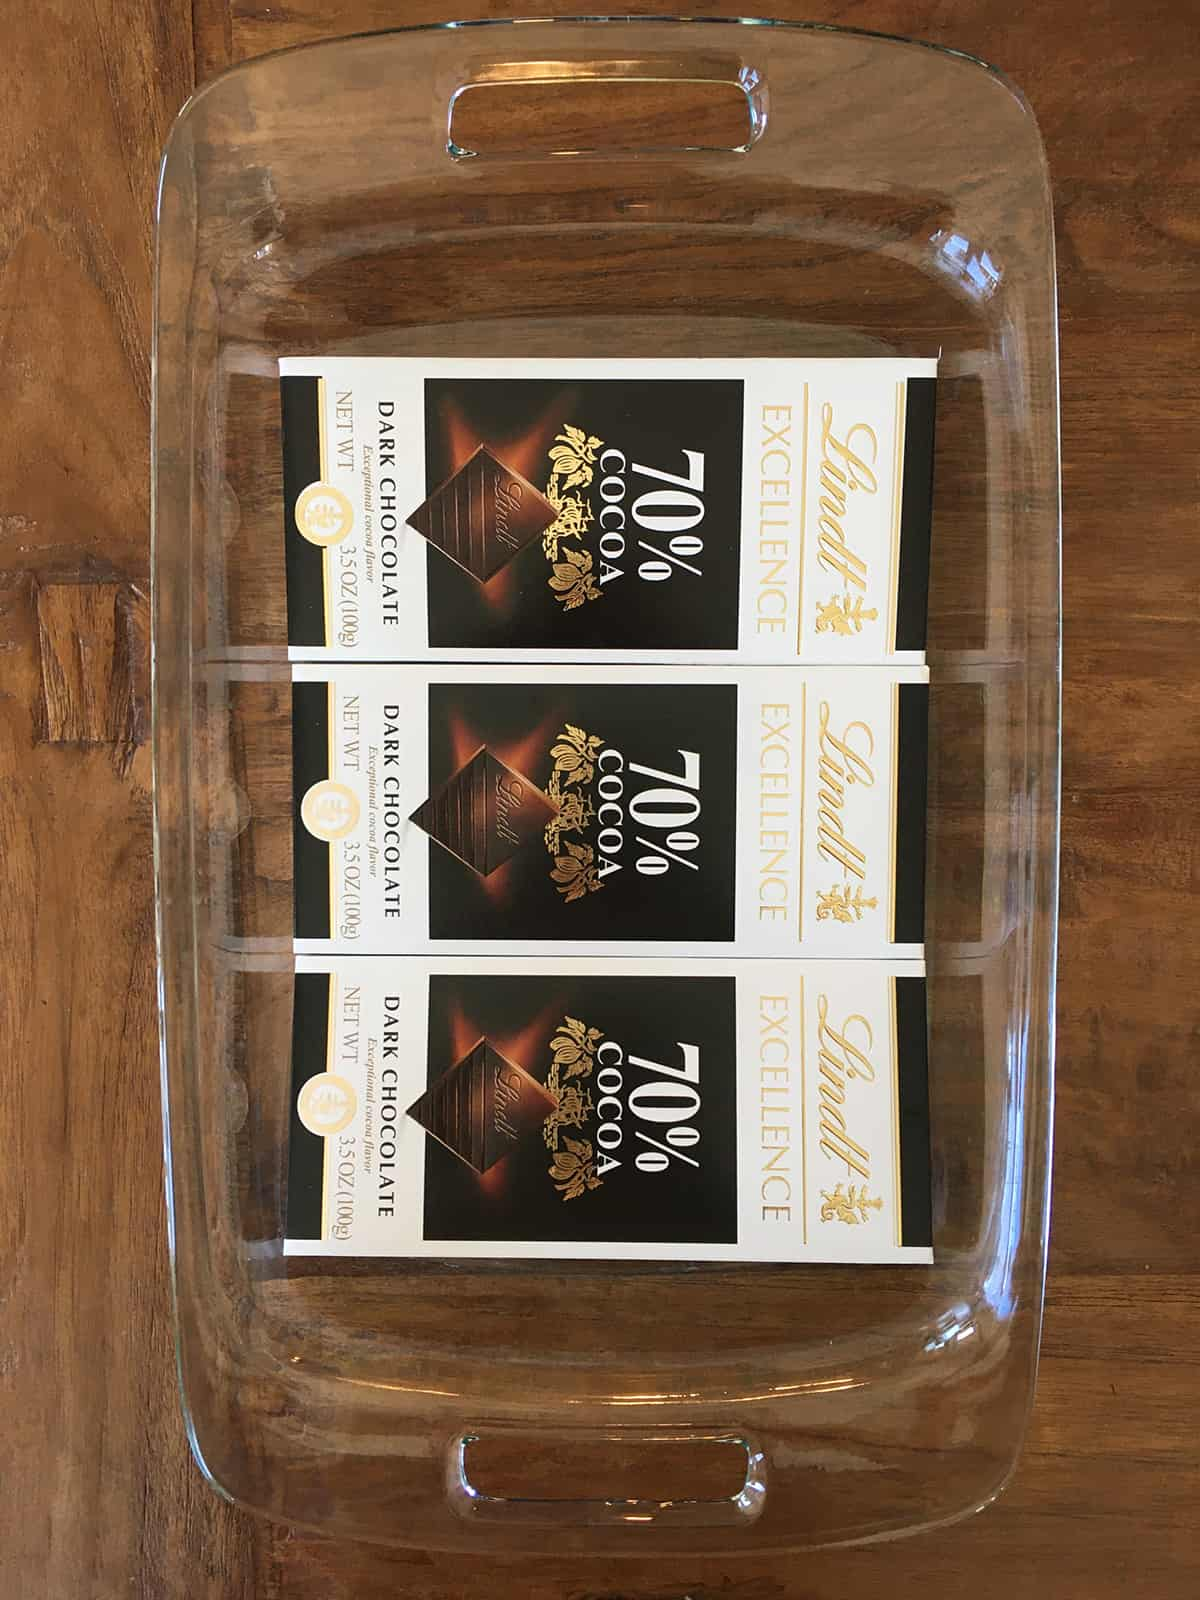 Three dark chocolate bars in a glass baking dish on a brown wood table